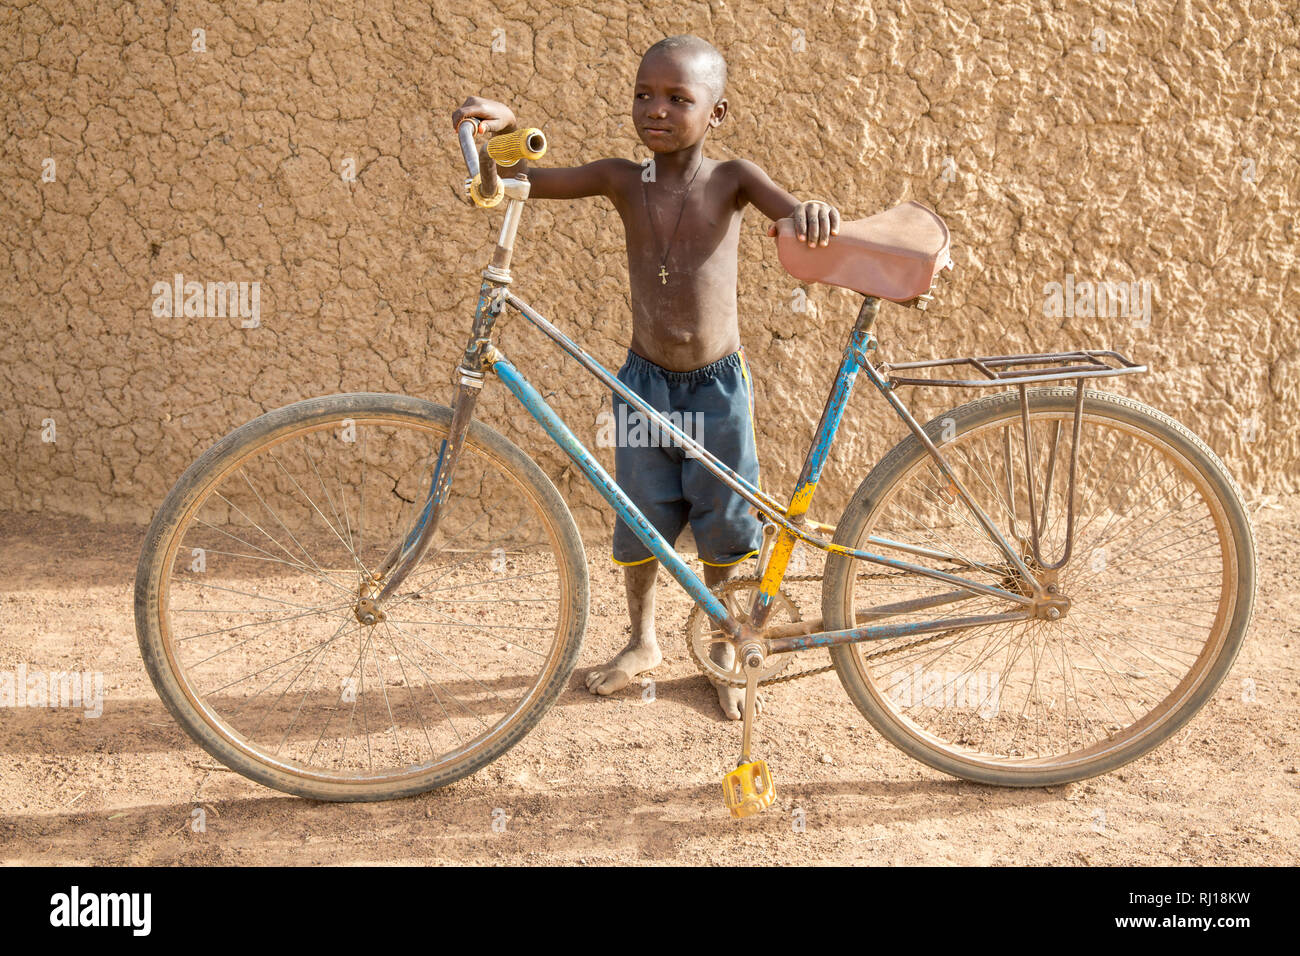 Samba village, Yako Province, Burkina Faso: A young boy with an adult bike. Stock Photo